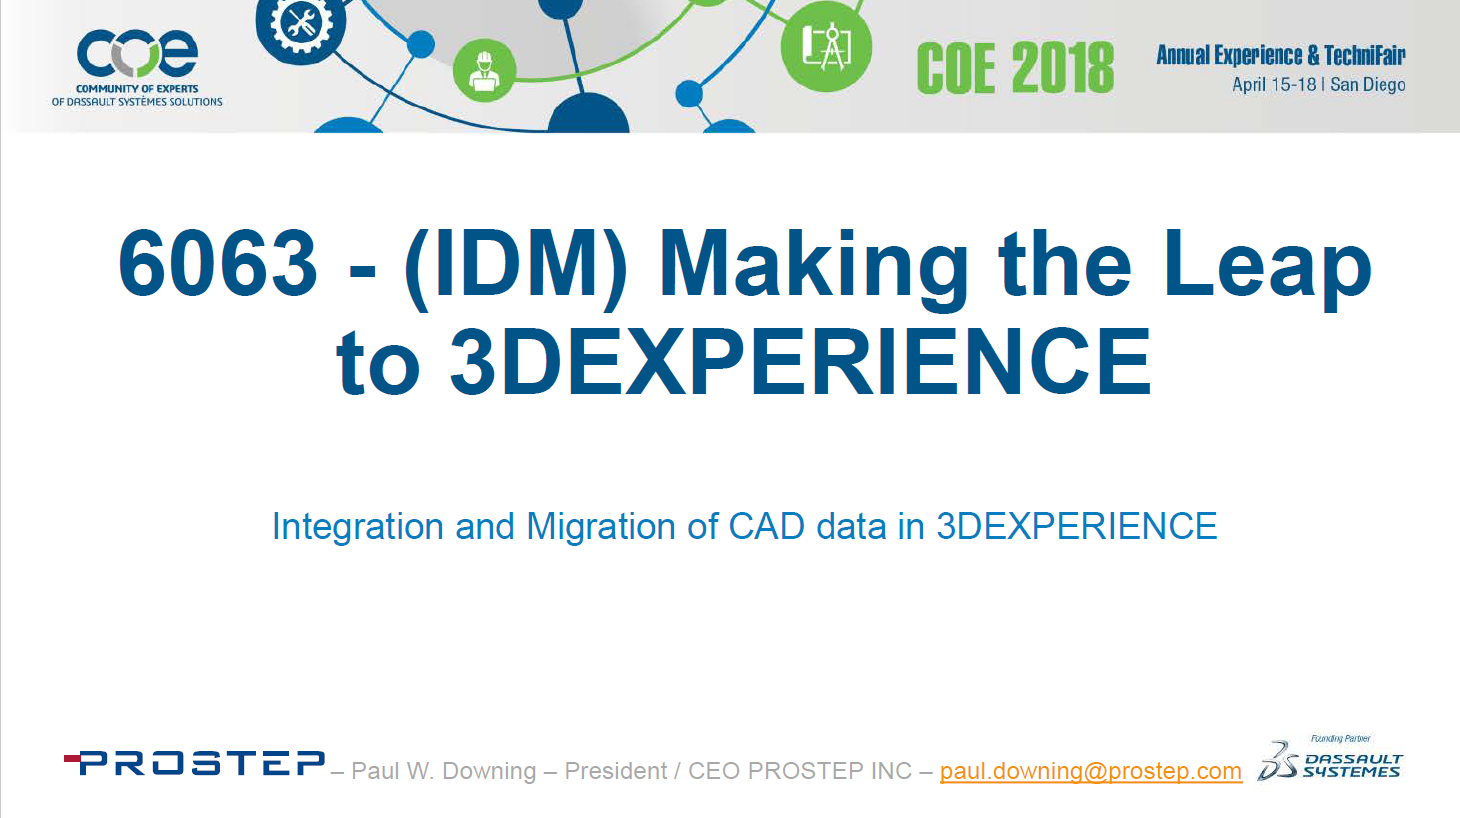 Integration/Migration of CAD Data in 3DEXPERIENCE